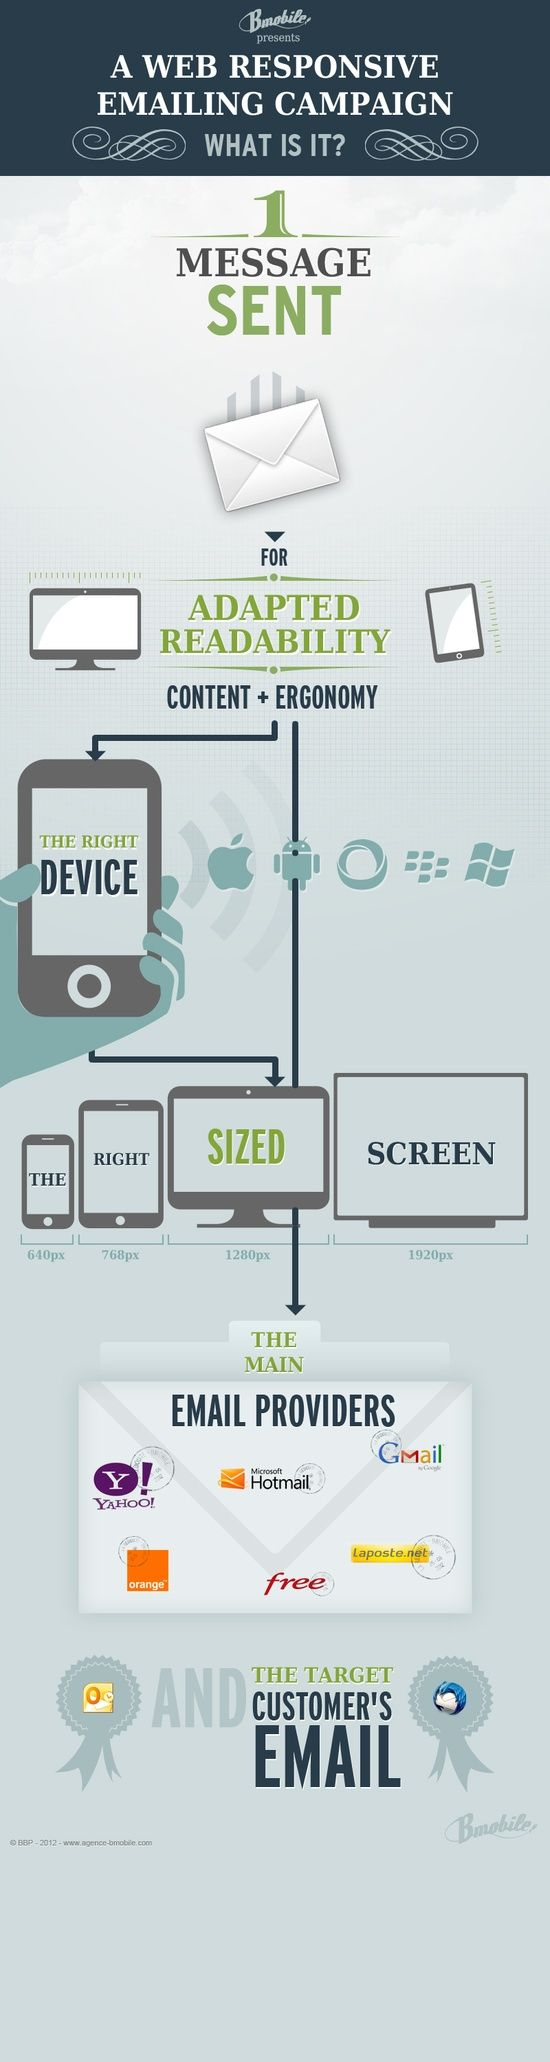 #Design #Infographic email and web responsive